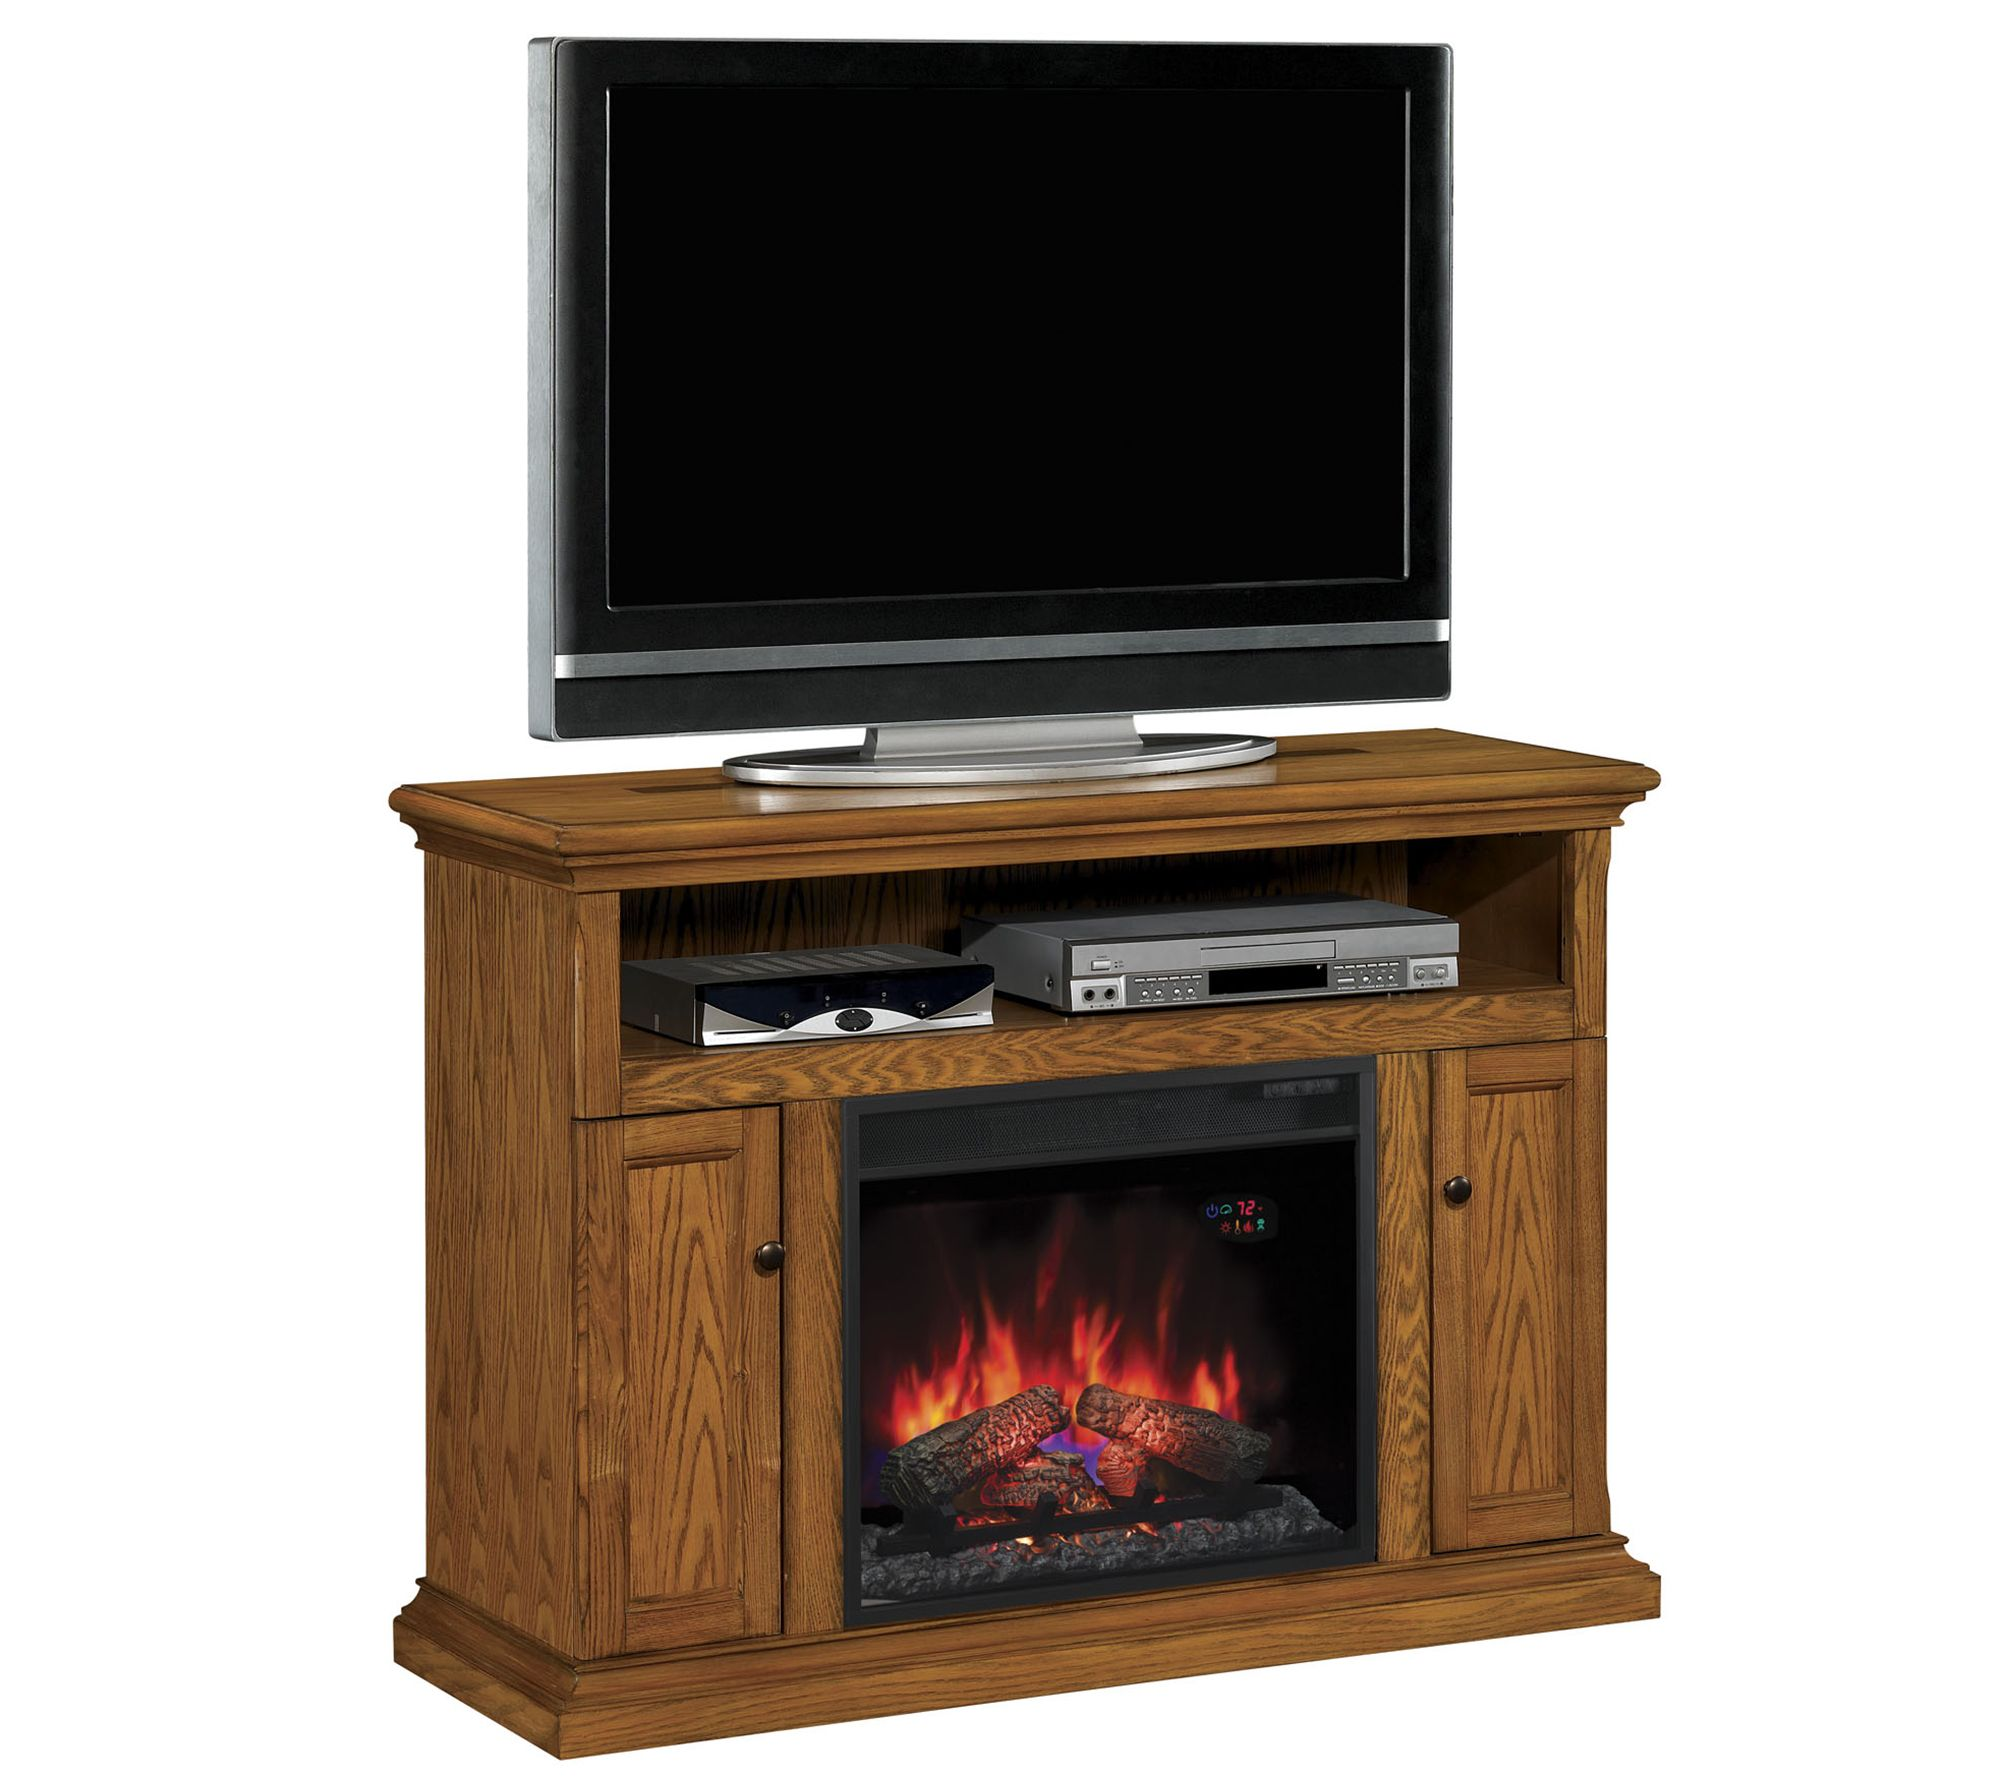 Bell'O Cannes TV Stand Infrared Electric Fireplace Heater — QVC.com